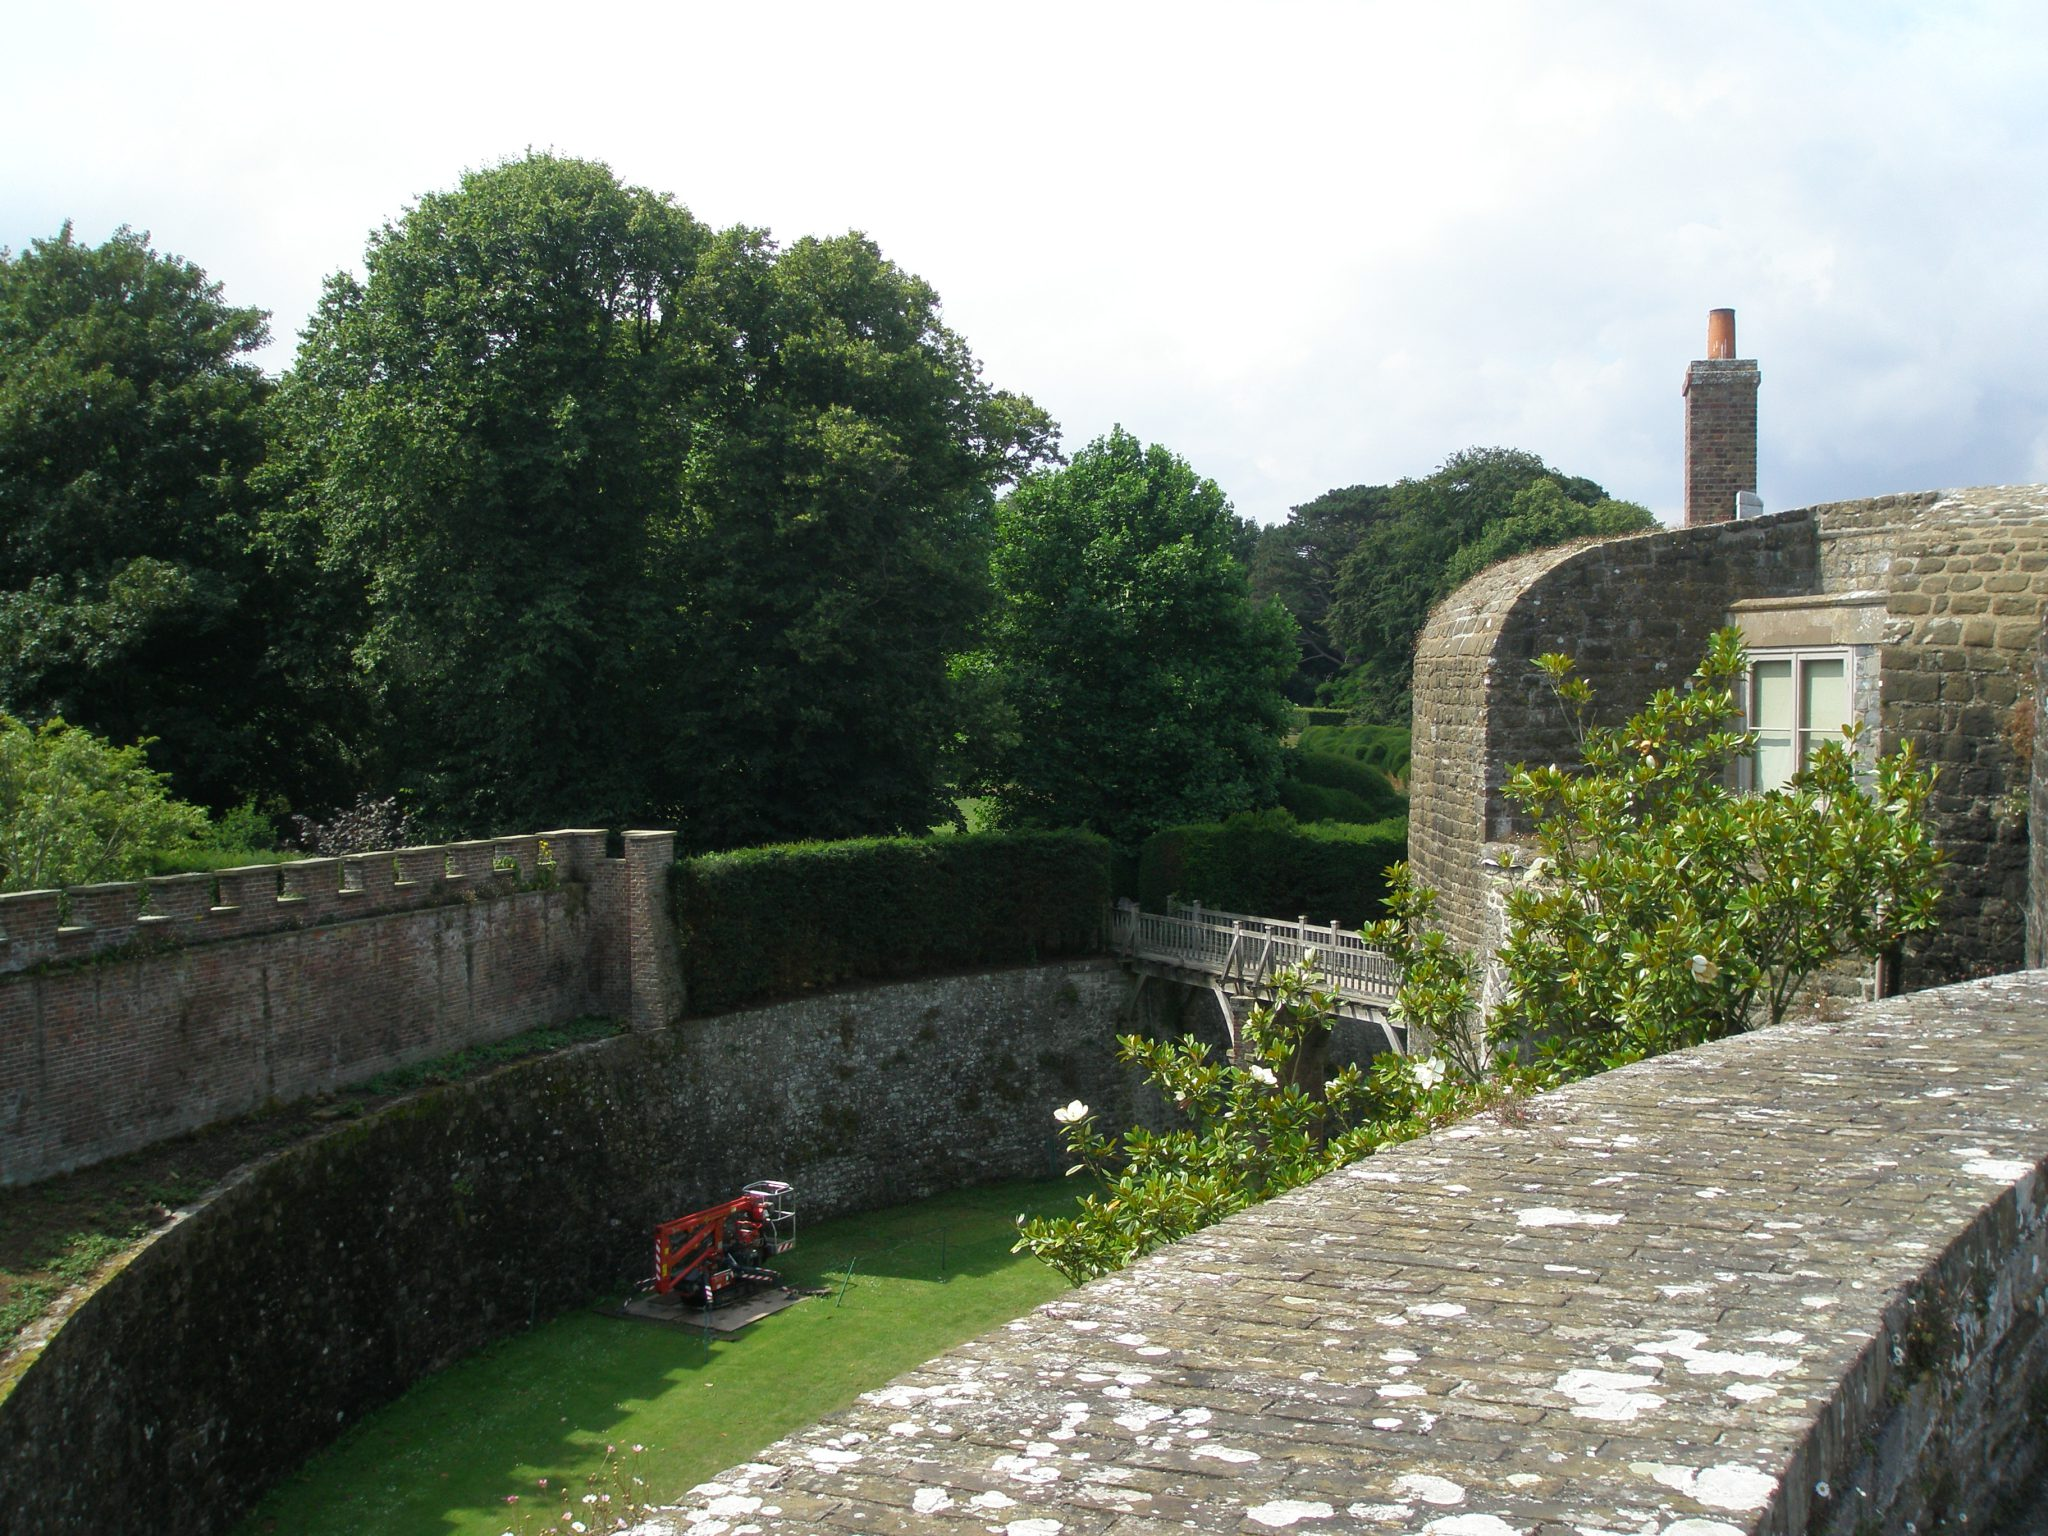 Another view from the Ramparts, down into the Moat Garden.